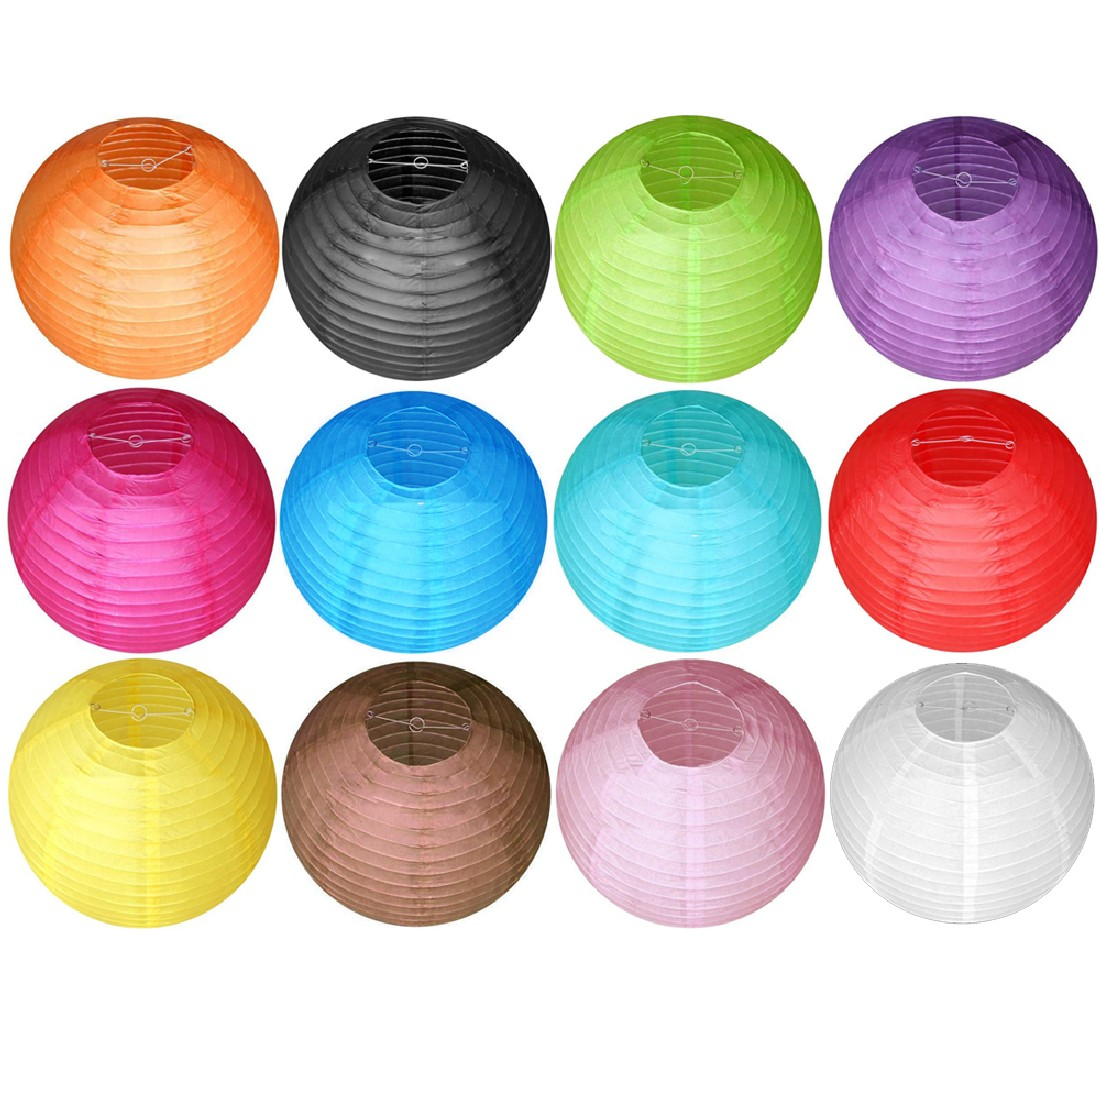 20 50cm Traditional Chinese Round Paper Lanterns For Wedding Birthday Party Decorations Supply Lamp Paper Ball20 50cm Traditional Chinese Round Paper Lanterns For Wedding Birthday Party Decorations Supply Lamp Paper Ball